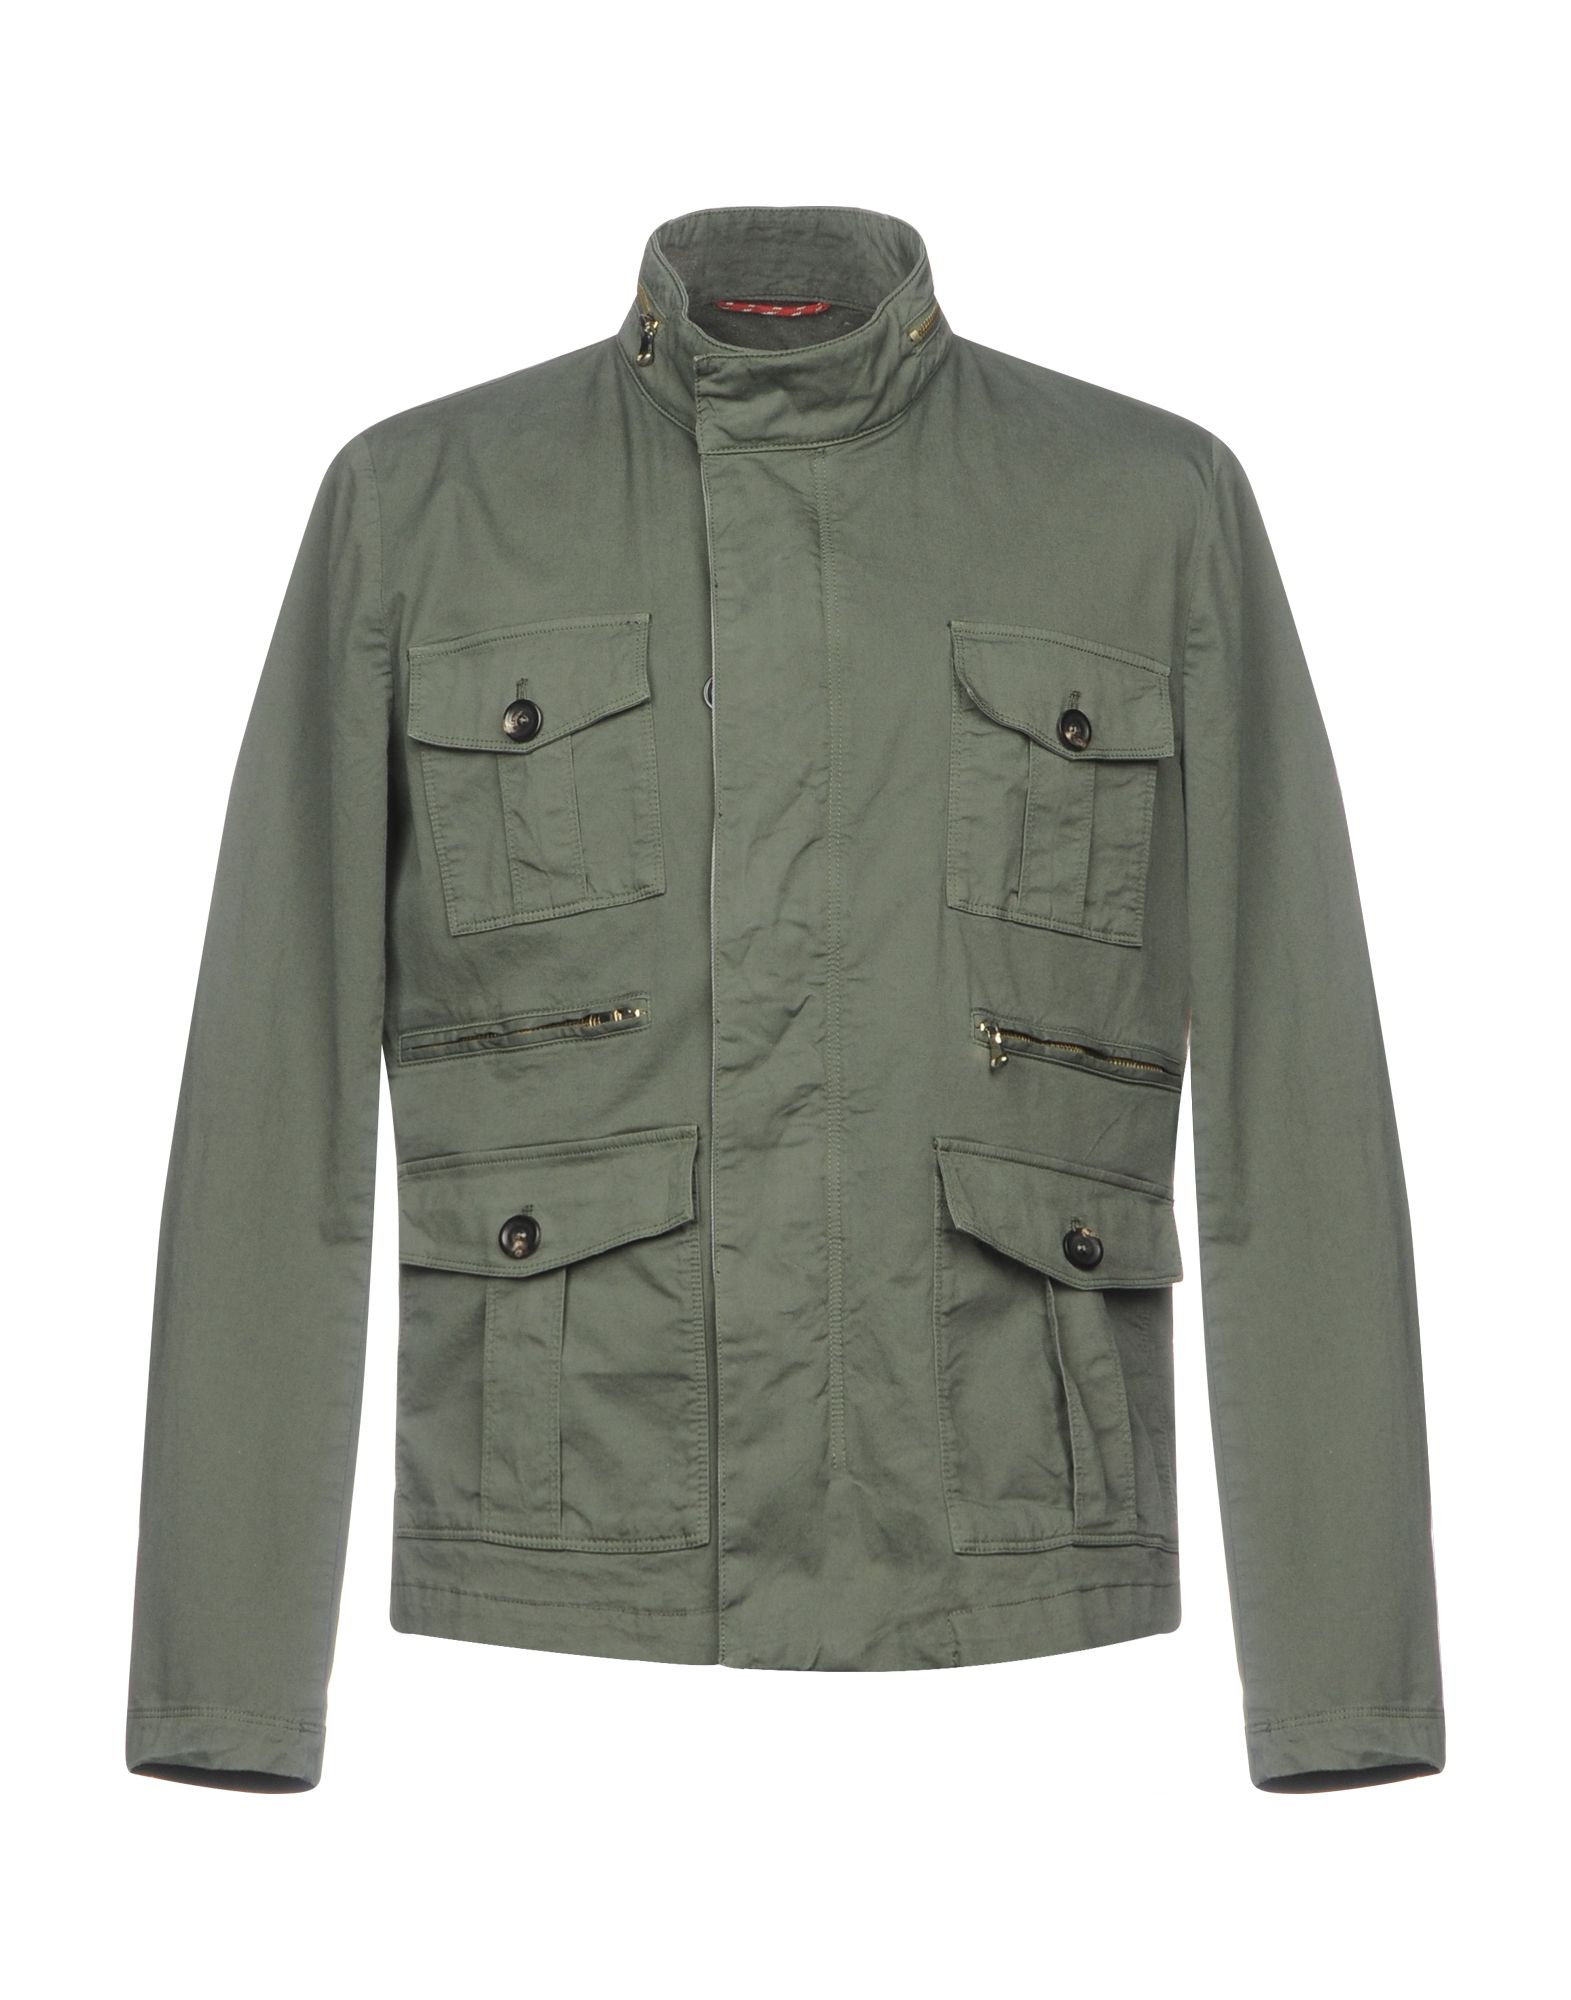 JEORDIES Jackets in Military Green